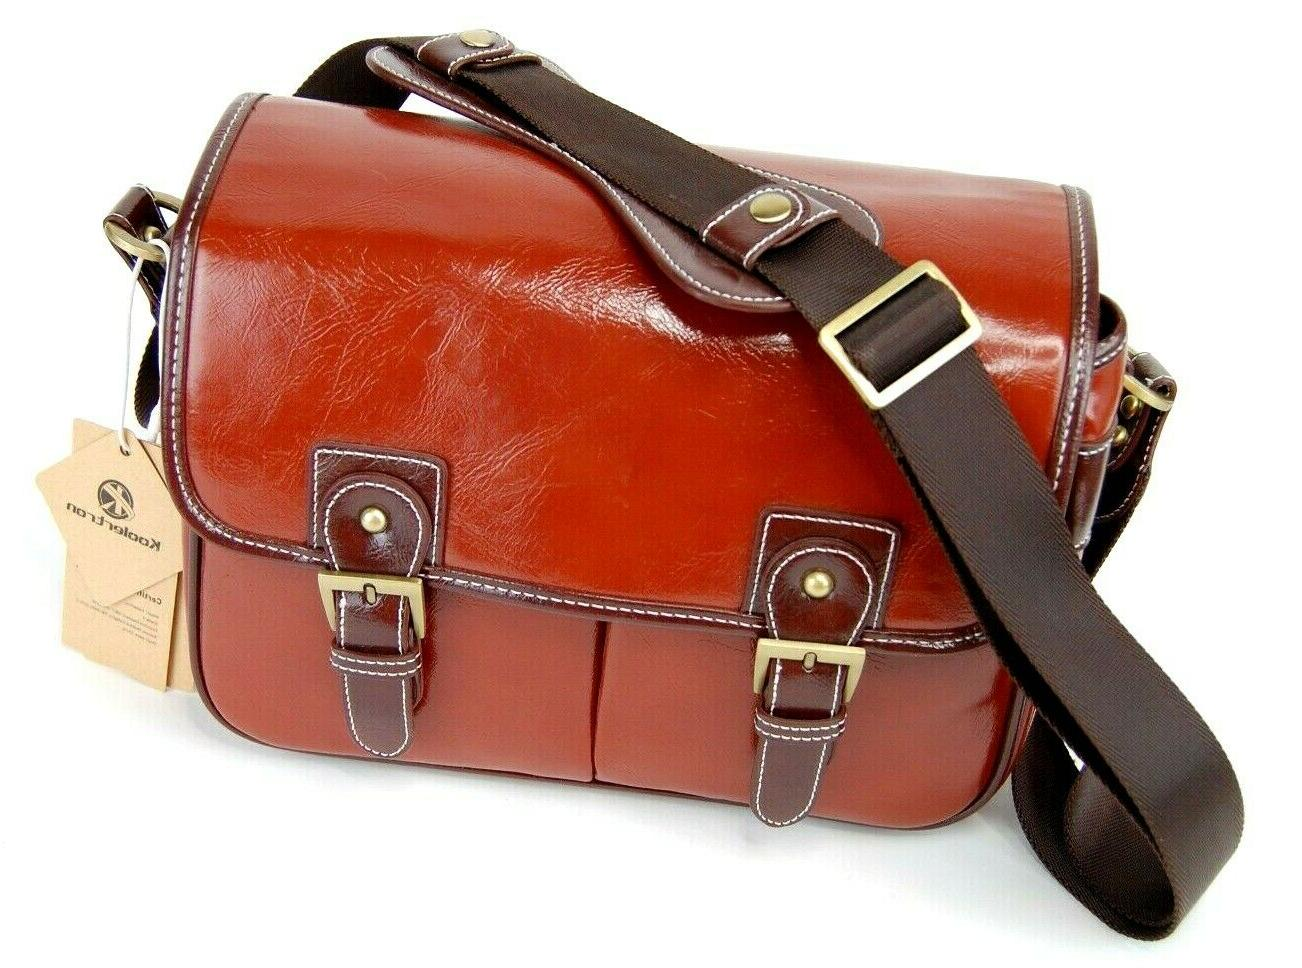 brand new leather camera bag in usa